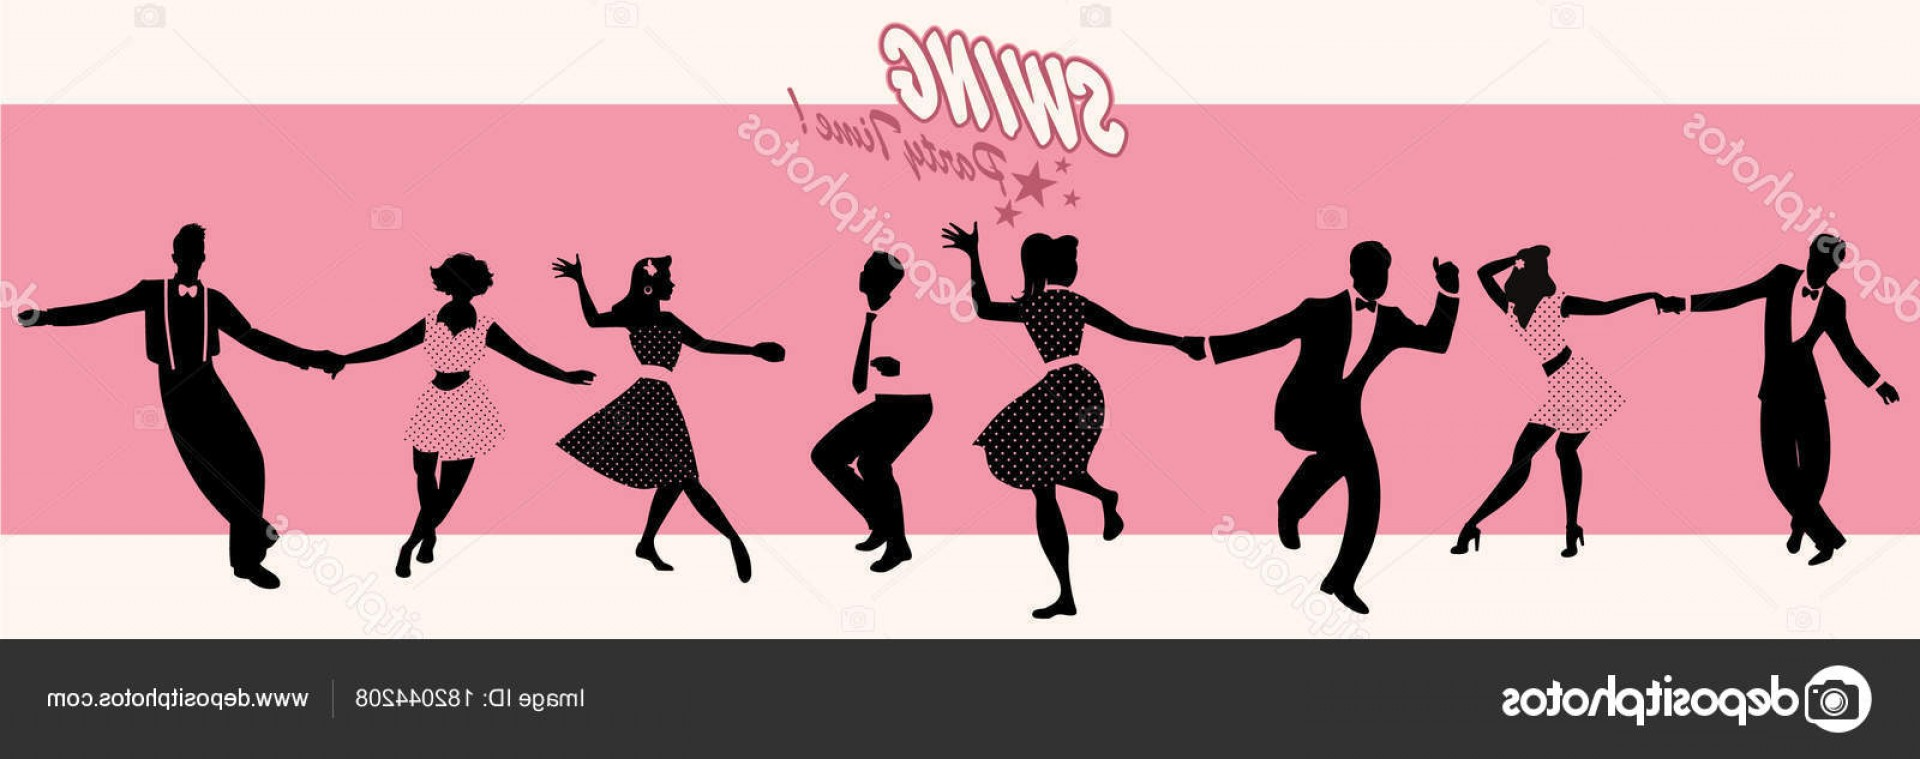 Vector Swing Dancers: Stock Illustration Swing Party Time Silhouettes Of